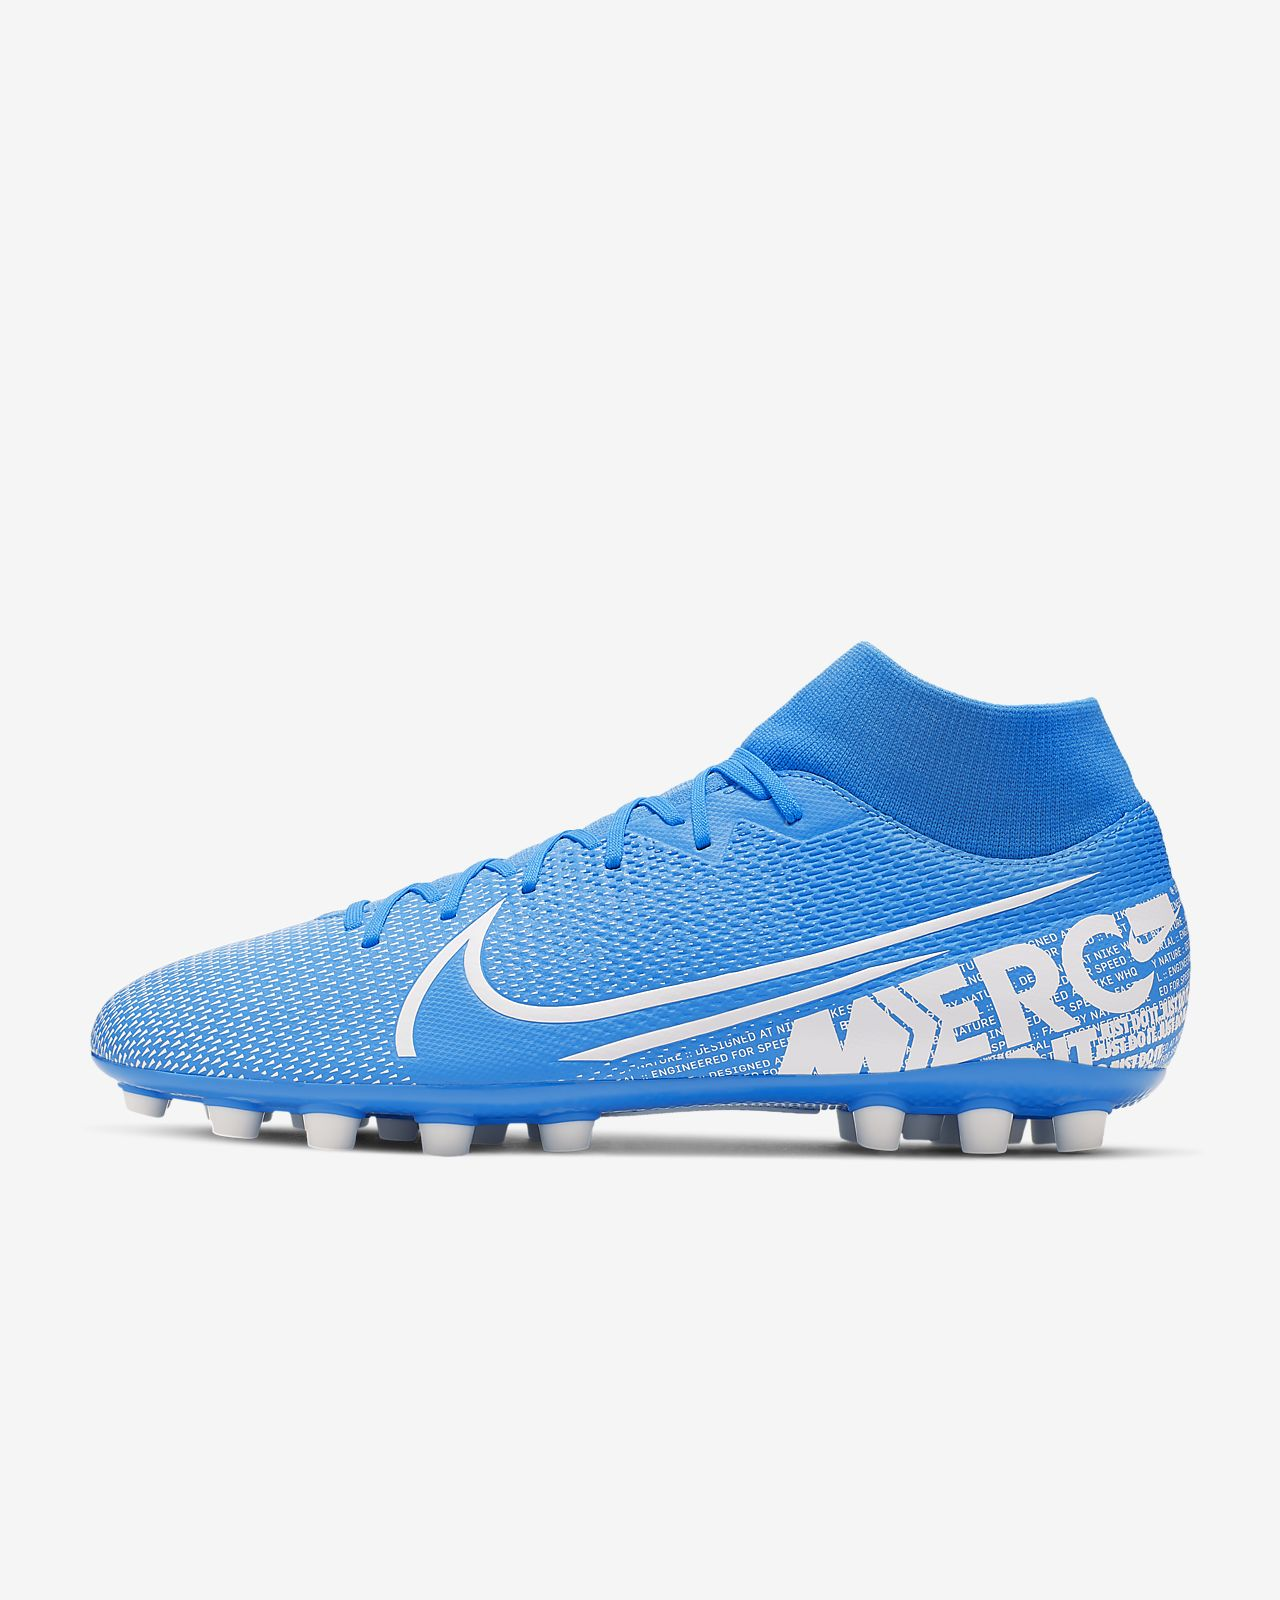 Chaussure de football à crampons pour terrain synthétique Nike Mercurial Superfly 7 Academy AG